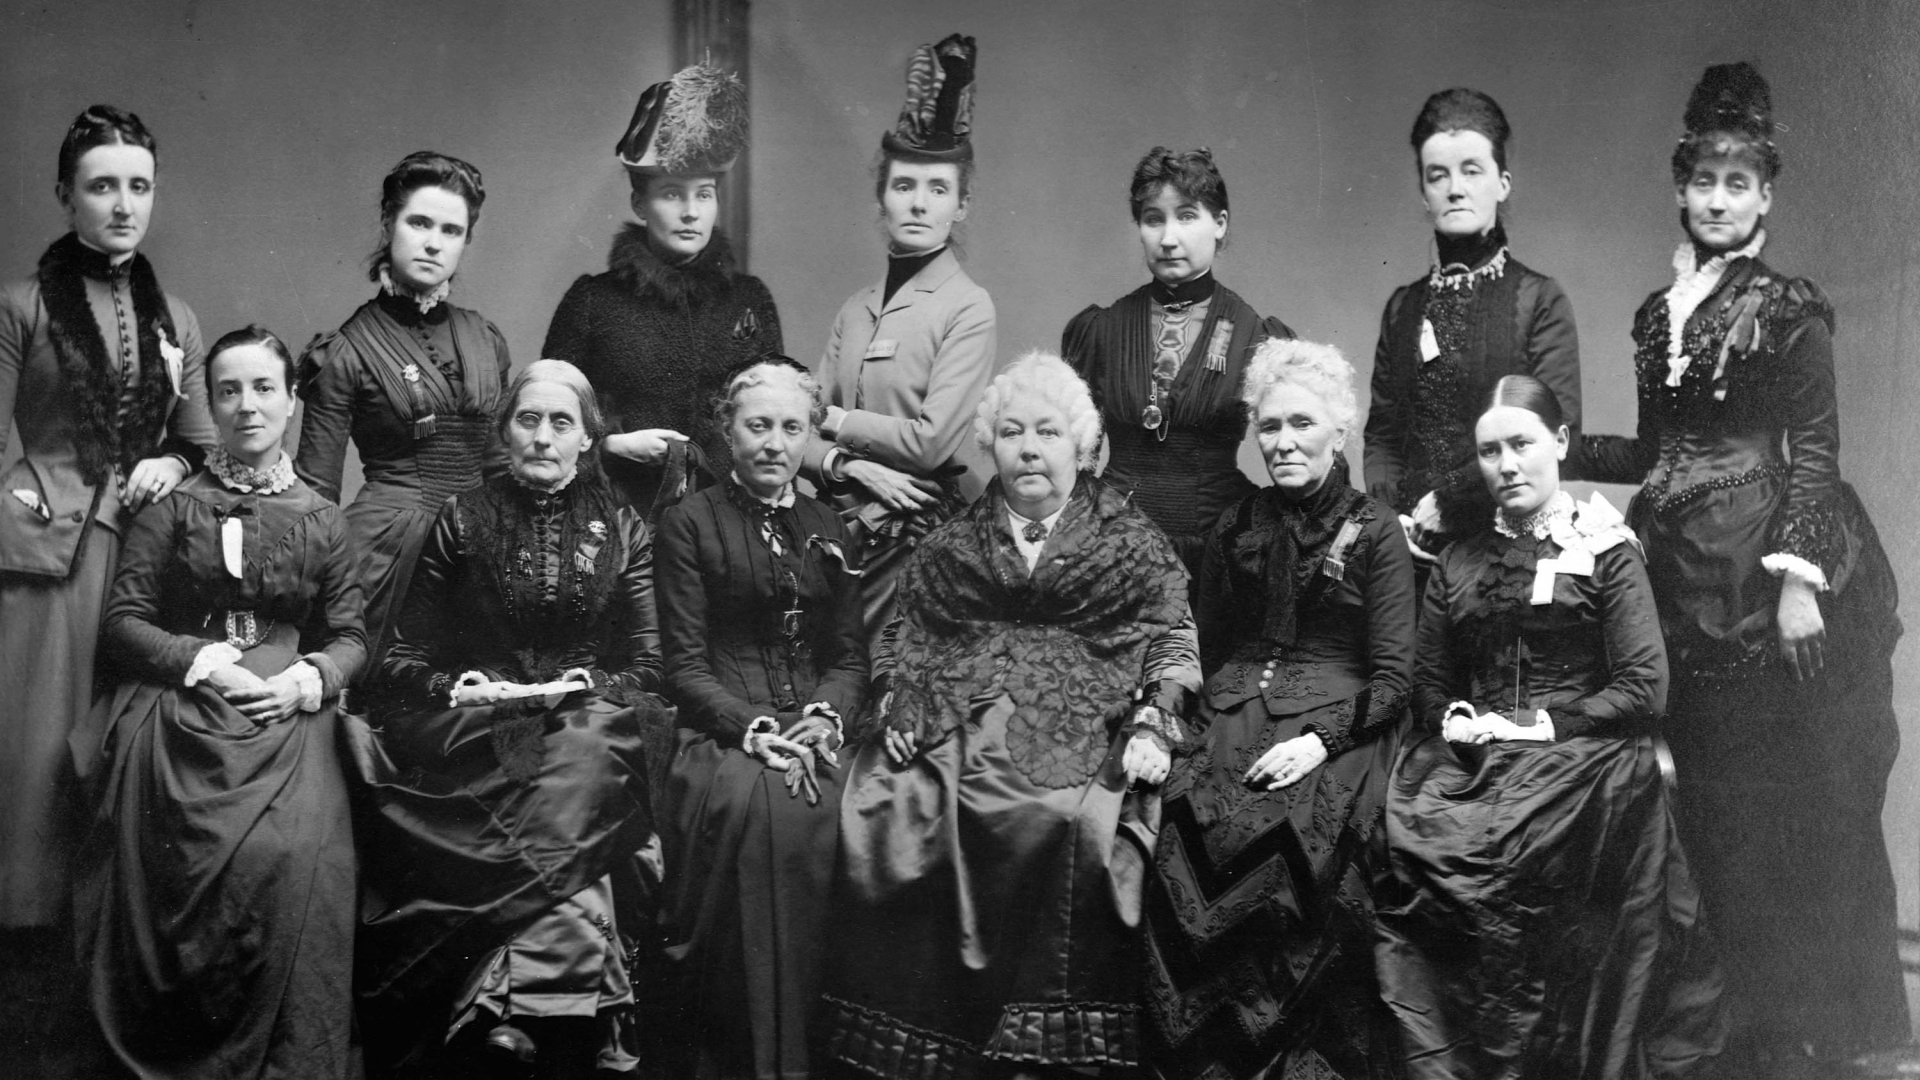 Susan B Anthony, front row and second from the left, with Elizabeth Cady Stanton, two seats over, with executive committee members from the International Council of Women. (Credit: Library of Congress/Corbis/VCG via Getty Images)